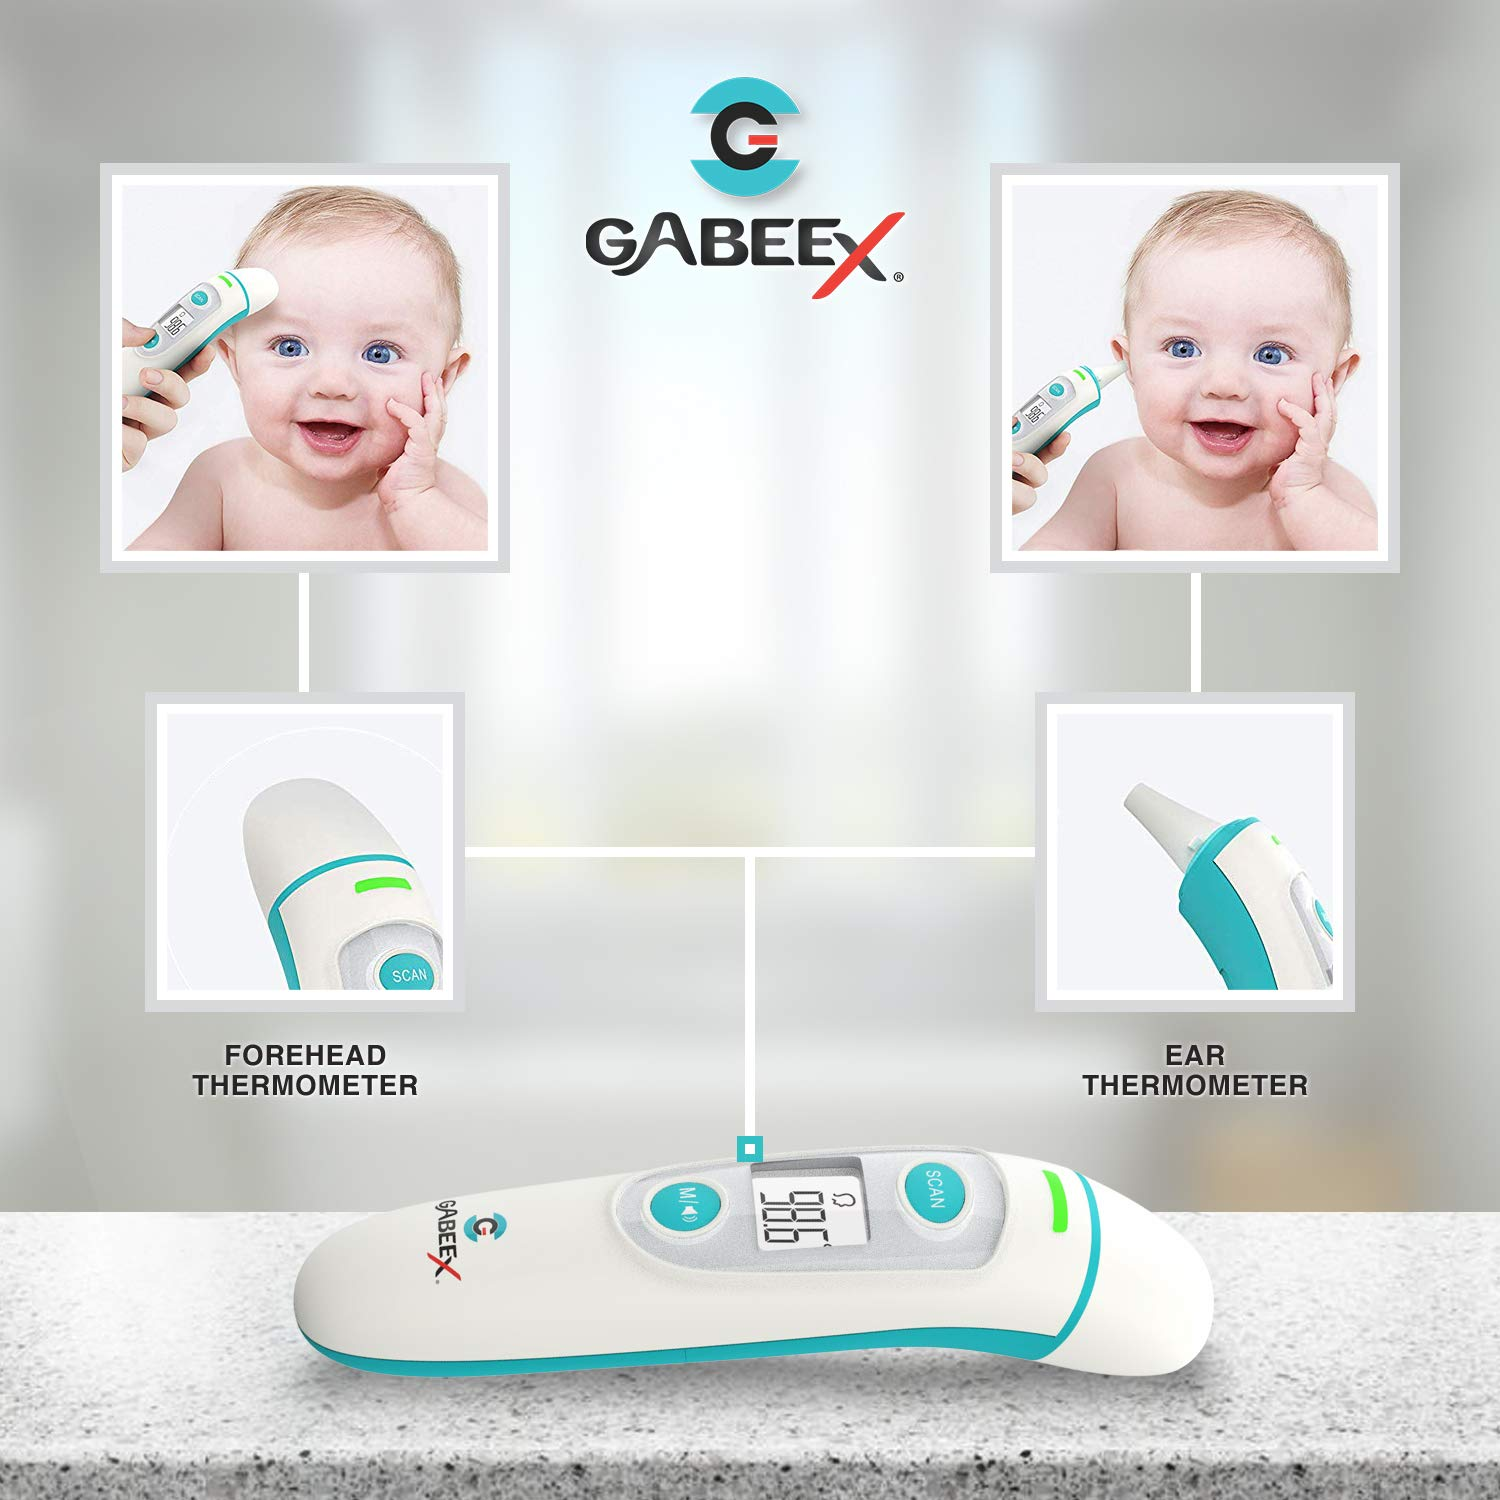 Amazon.com : 2019 Gabeex Best Infrared Digital Thermometer (Termometro)- Forehead and Ear- Infrared Lens Technology- Dual Mode Fahrenheit/Celsius- FDA ...